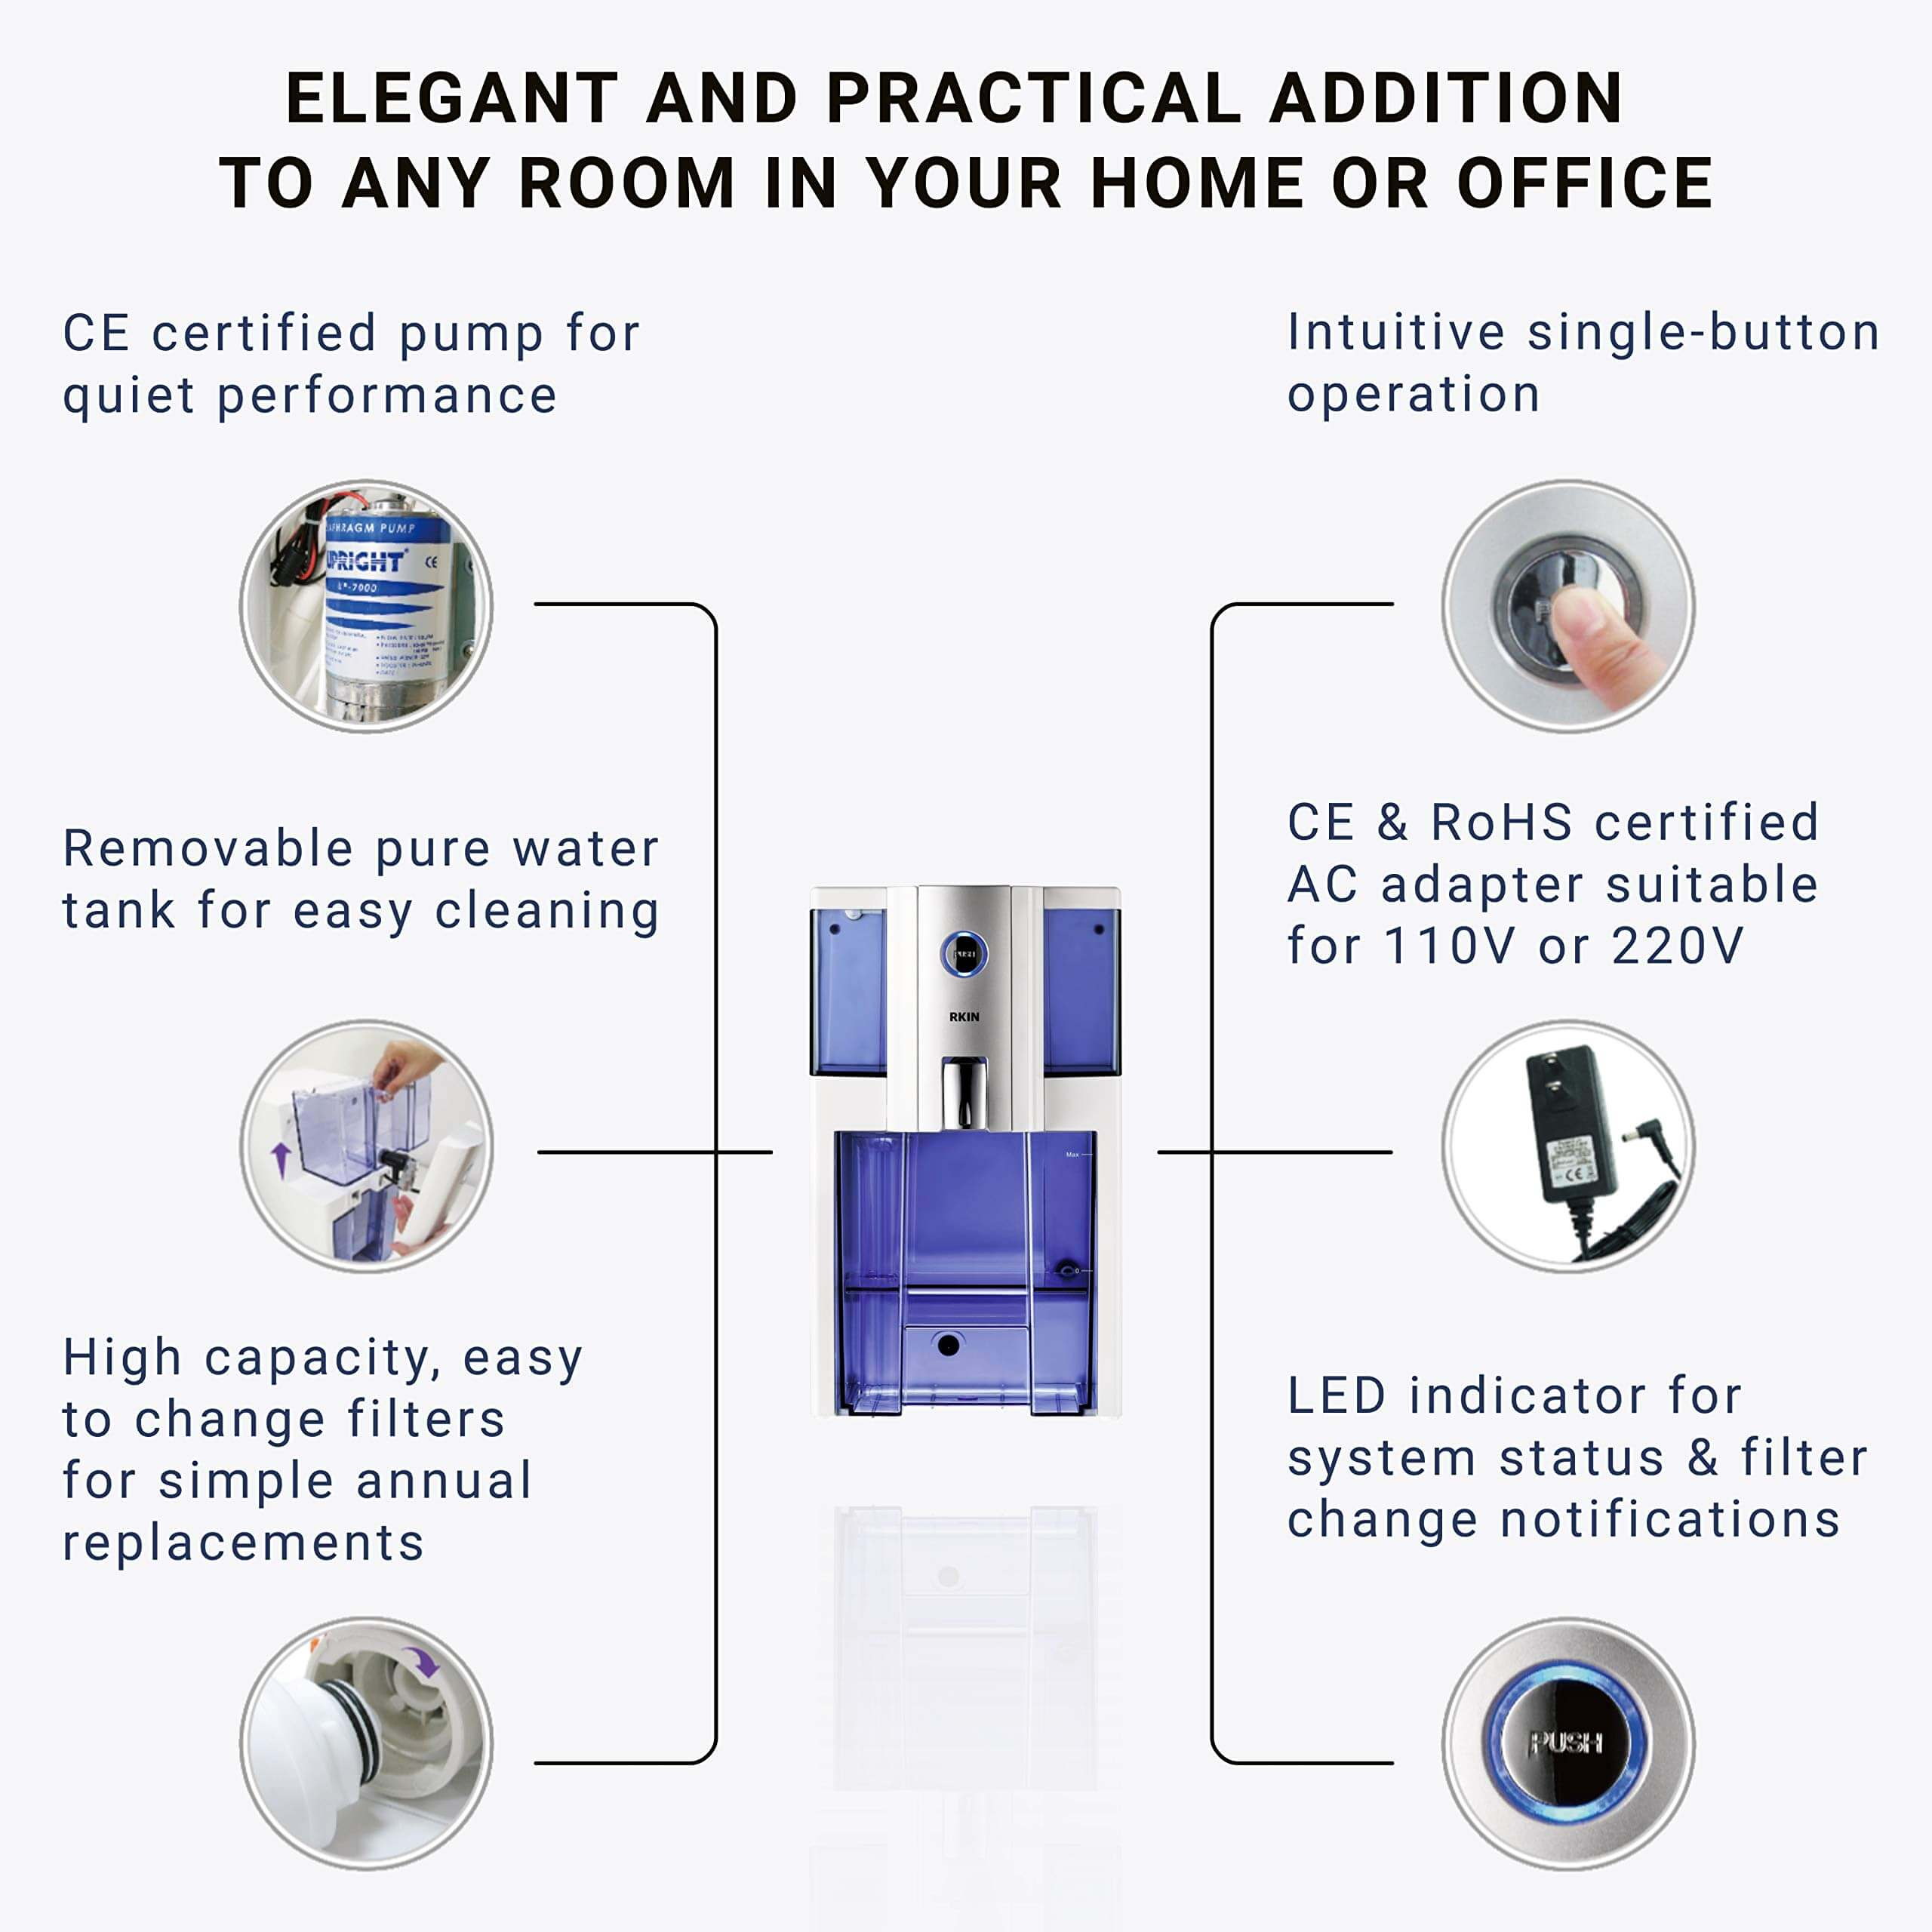 AlcaPure Zero Installation Purifier Reverse Osmosis Countertop Water Filter, reverse osmosis water filter countertop, countertop reverse osmosis water filter, the best water filter, best tap water filter, drinking water filtration system